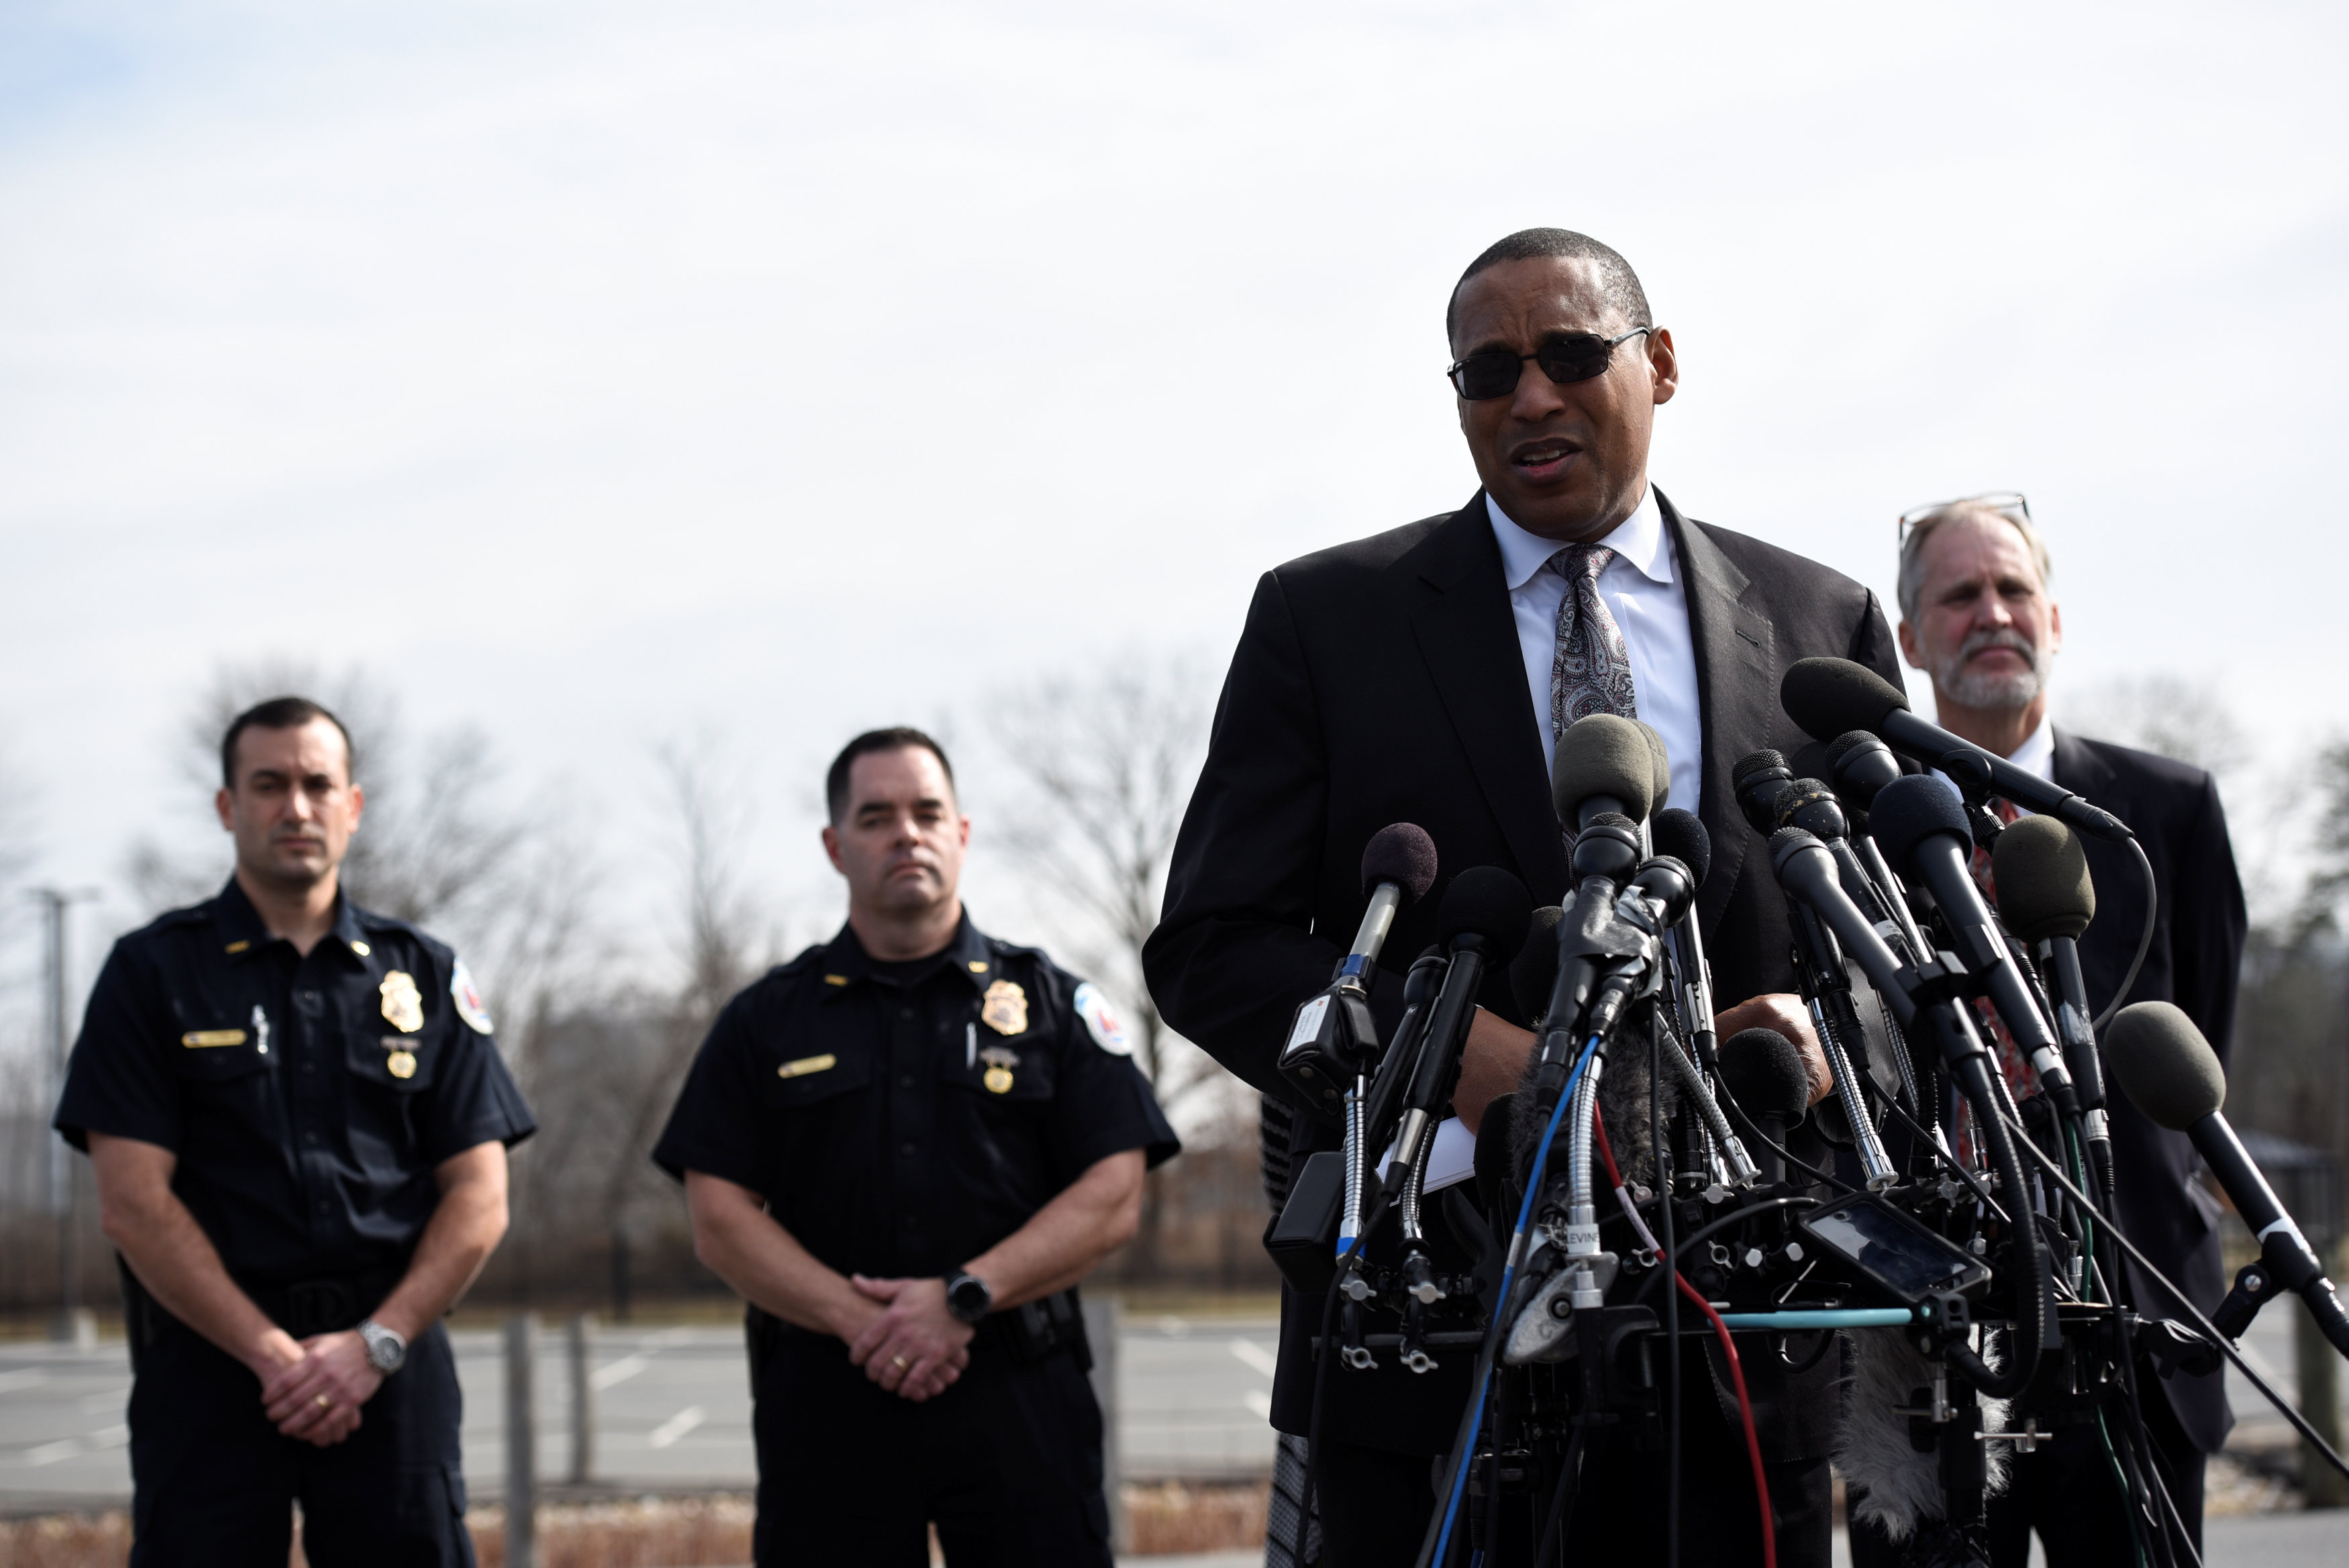 FBI Special Agent in Charge Gordon Johnson speaks at a news conference after a shooting outside the National Security Agency (NSA) headquarters in Fort Meade, Maryland, U.S. February 14, 2018.